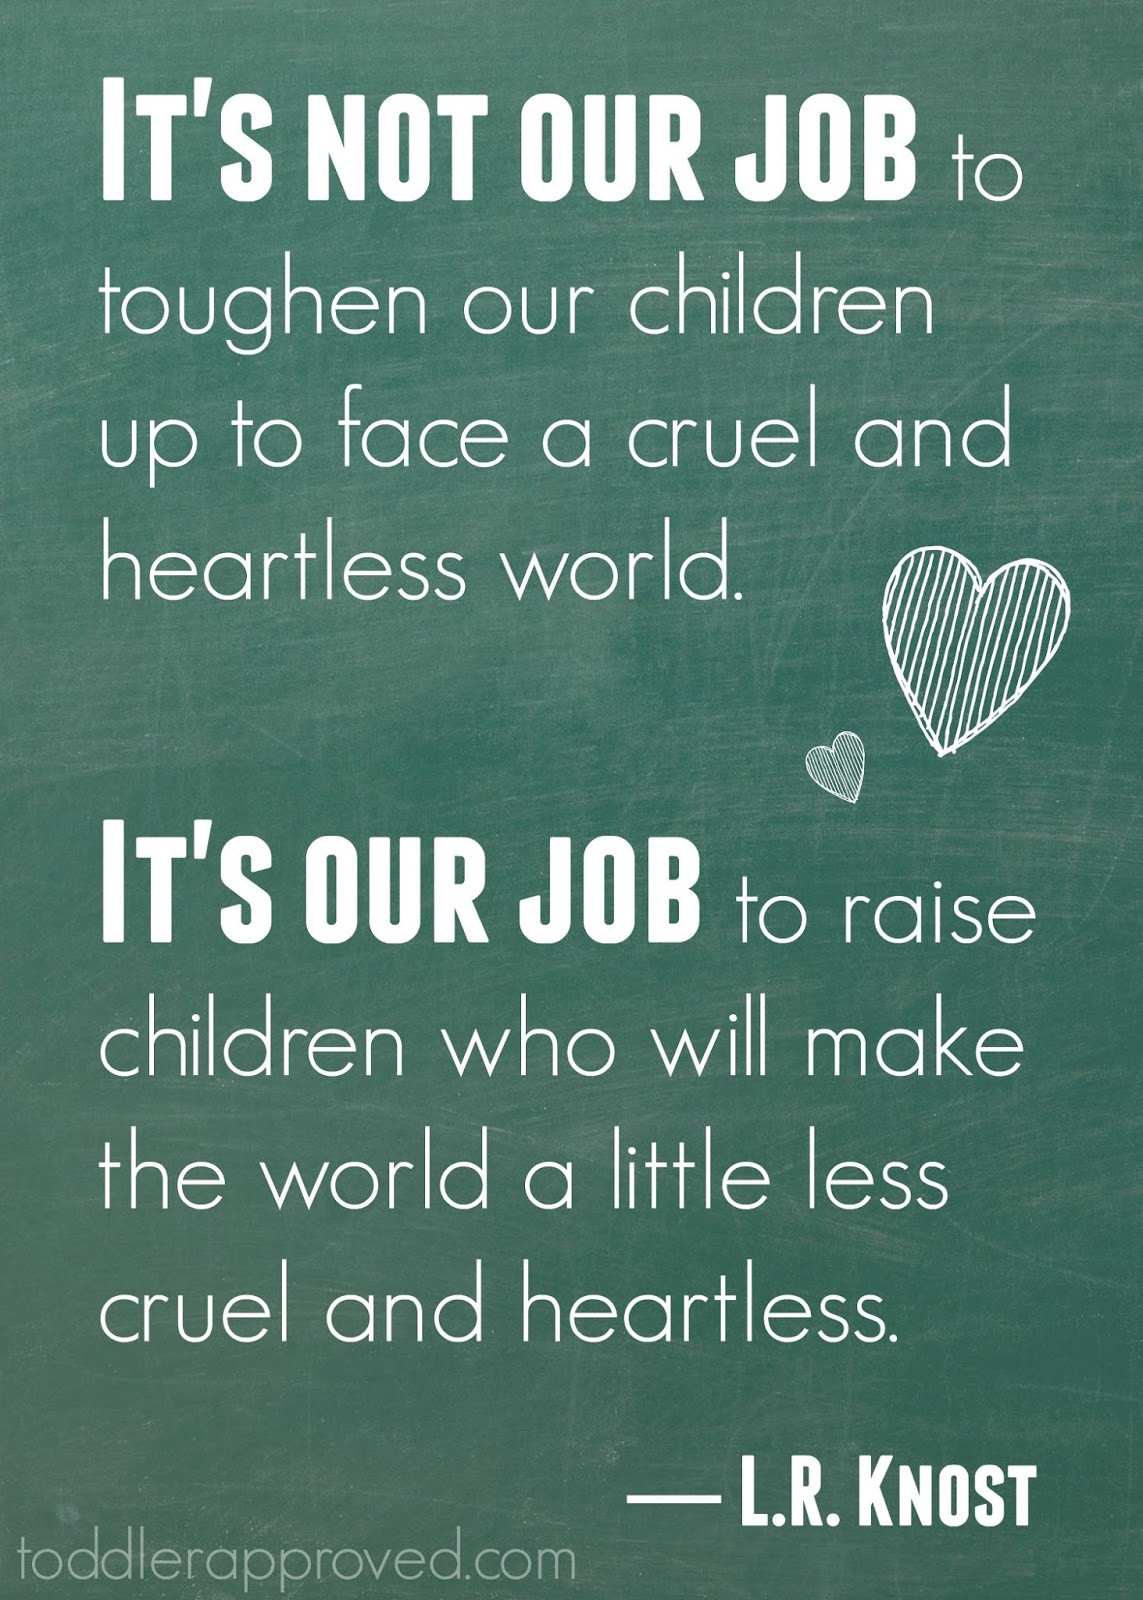 Quotes About Children  Toddler Approved My Favorite Awesome Parenting & Life Quotes